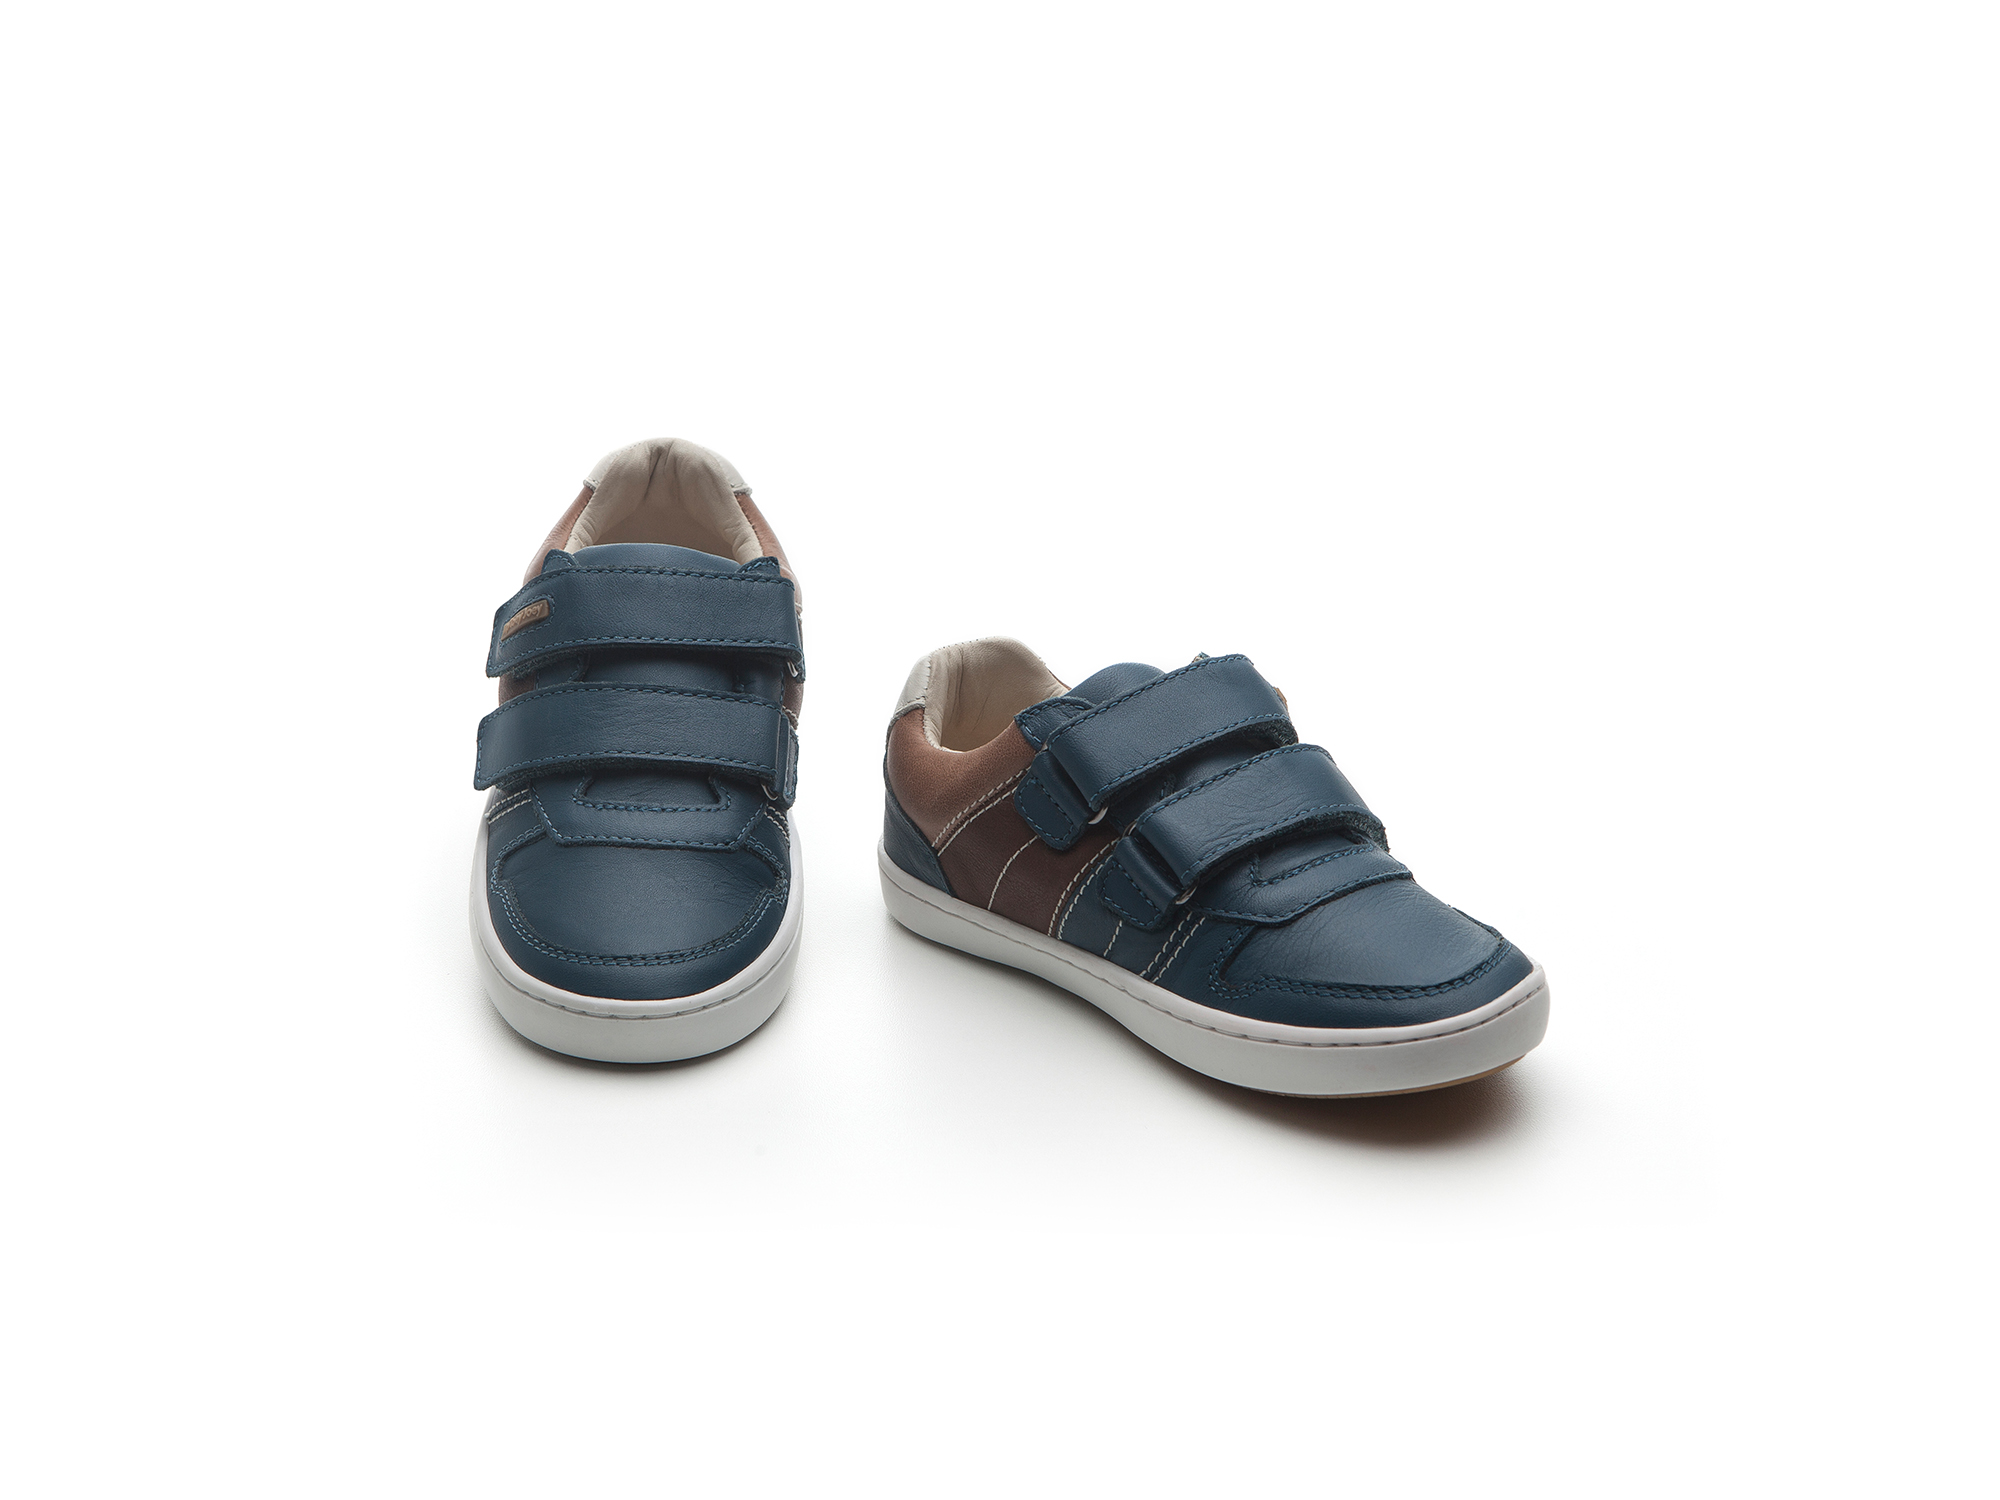 Tênis T Dusk Laguna/ Old Brown/ Earth C Toddler 2 à 4 anos - 1